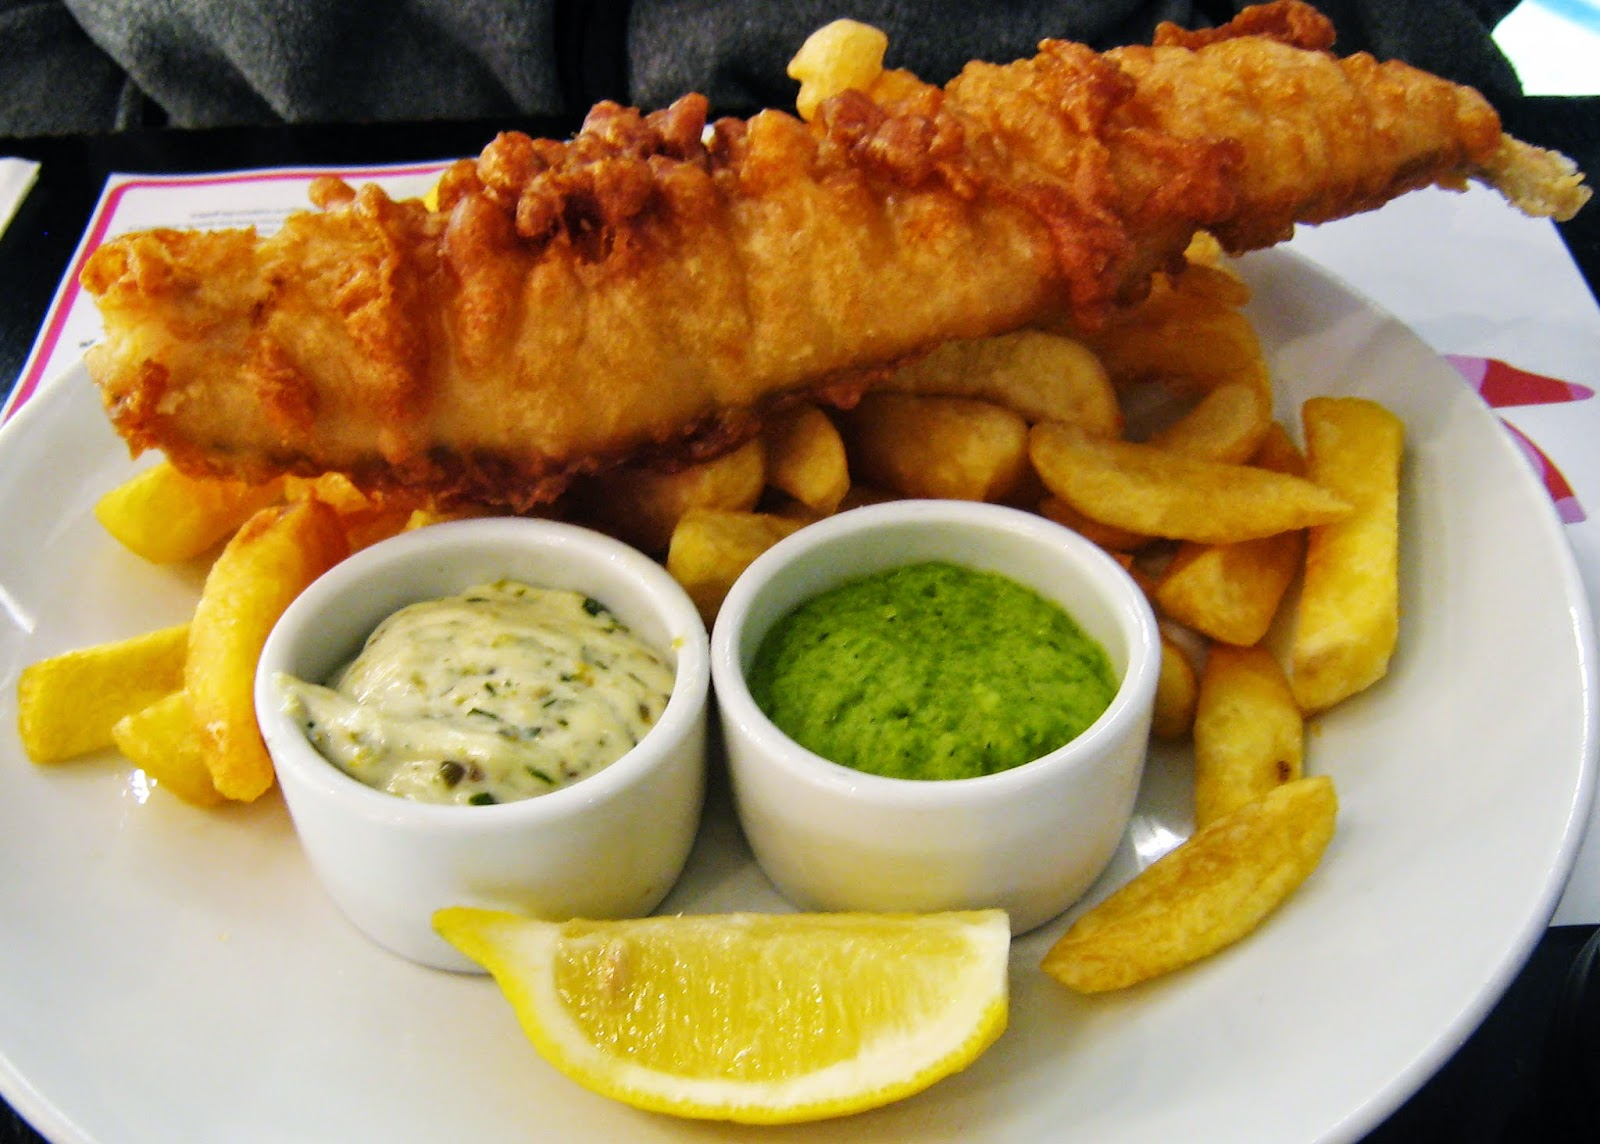 http://www.theguardian.com/environment/2014/dec/19/seafood-country-of-origin-labelling-may-be-extended-to-fish-and-chip-shops